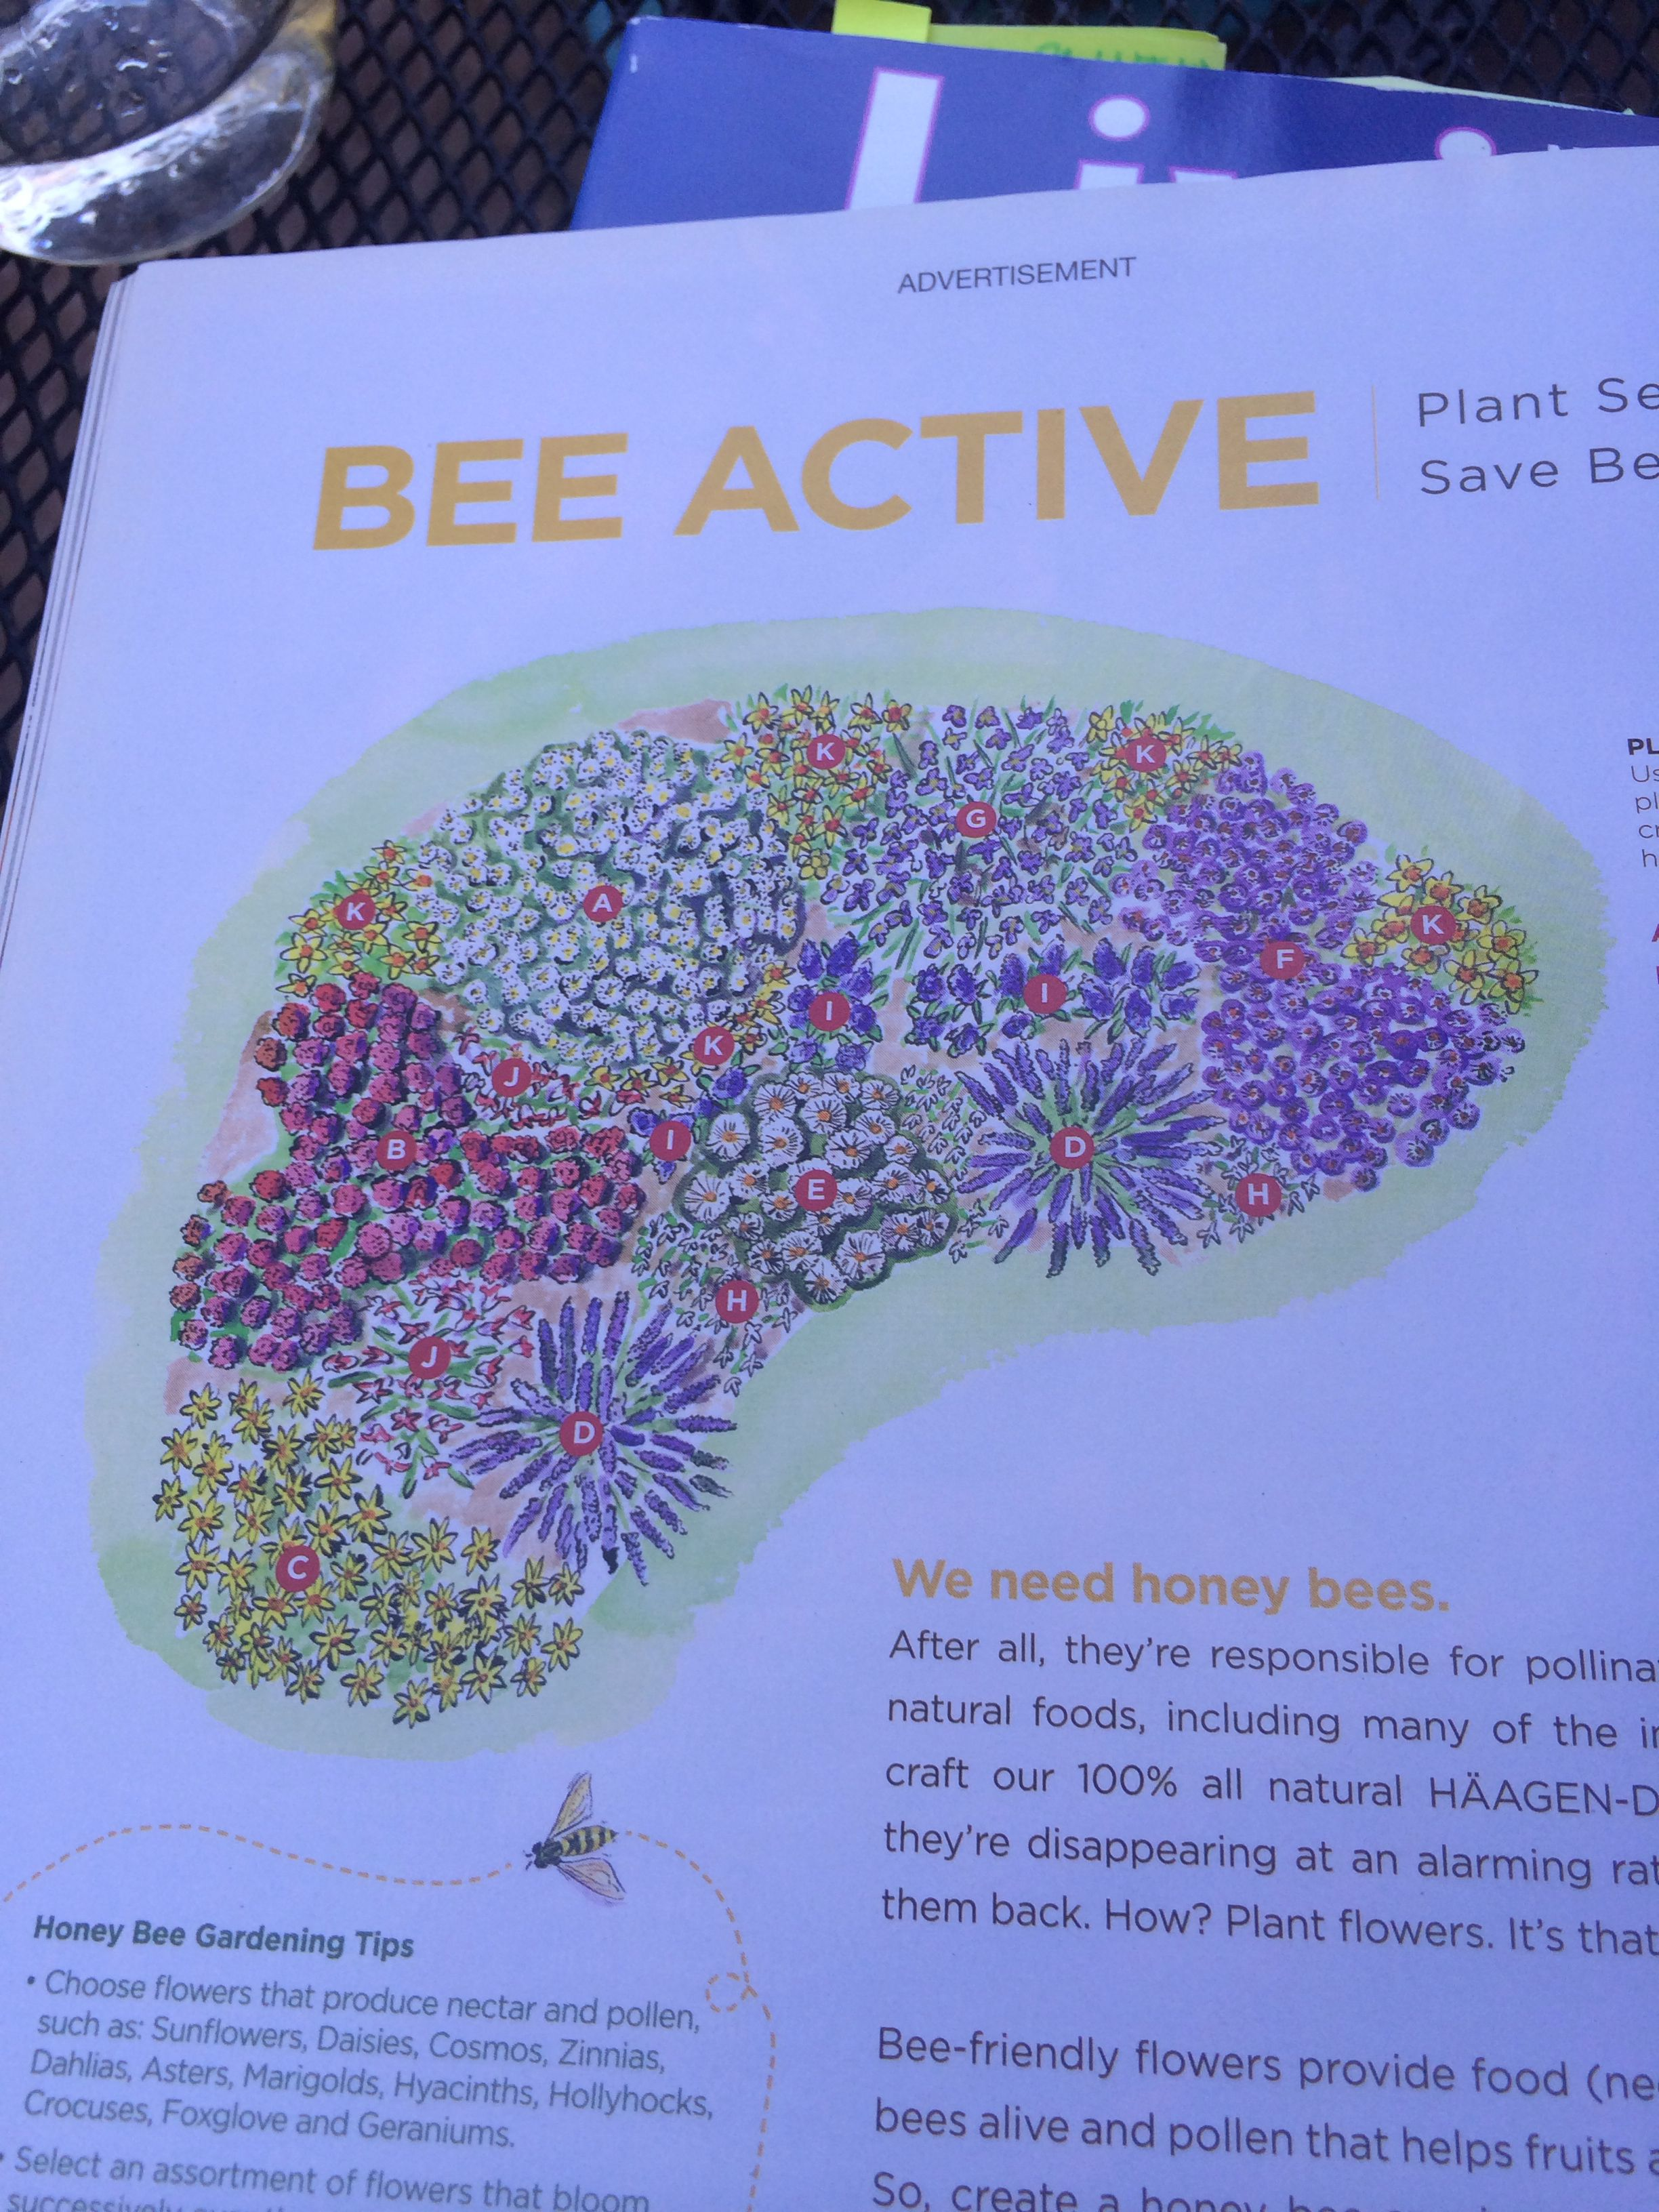 Plan Bee From Haagen Dazs Plant These For Your Own Honey Bee Garden A White Boltonia B Jupiter S Beard C Zagreb Ti Honey Bee Garden Bee Garden Plan Bee